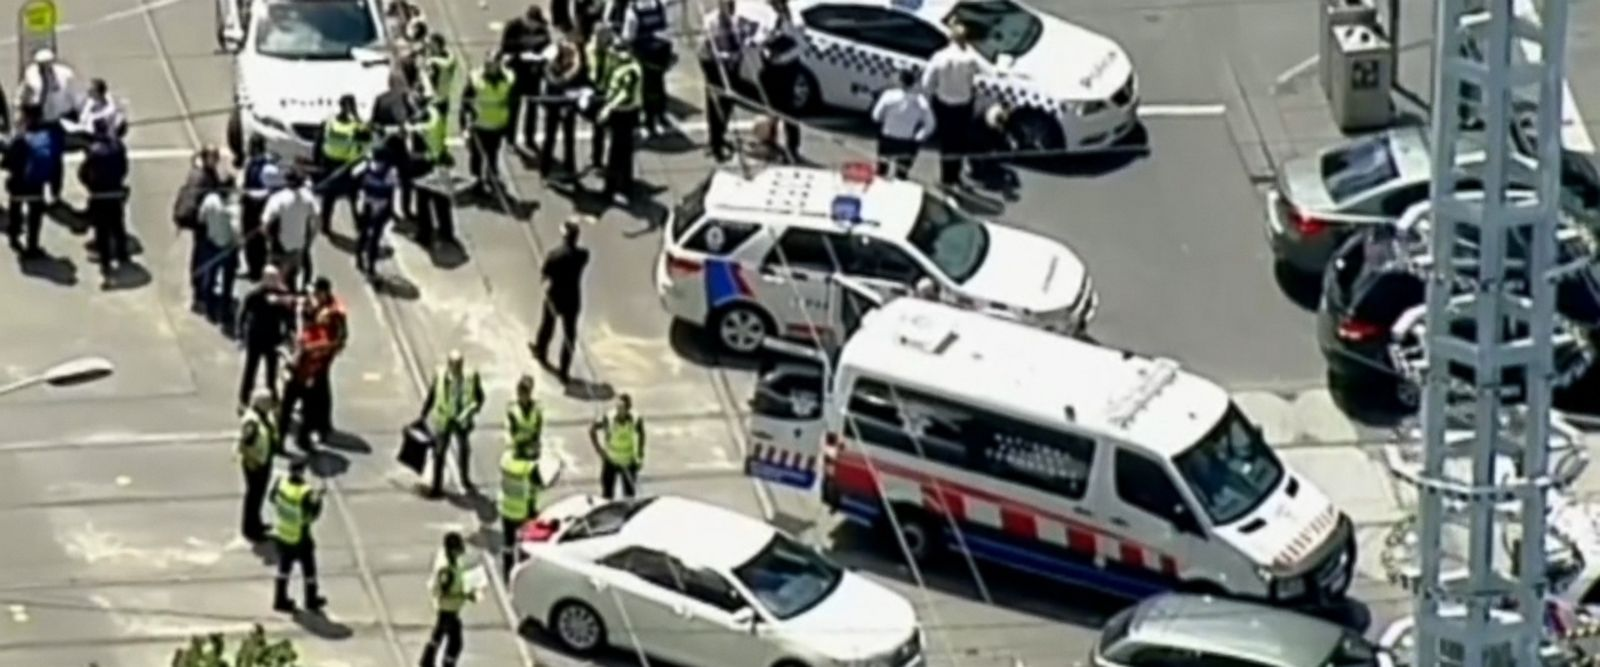 VIDEO: Police have apprehended a man they say deliberately drove into a crowd of pedestrians in one of Australia's largest cities, killing three people and injuring at least 20.